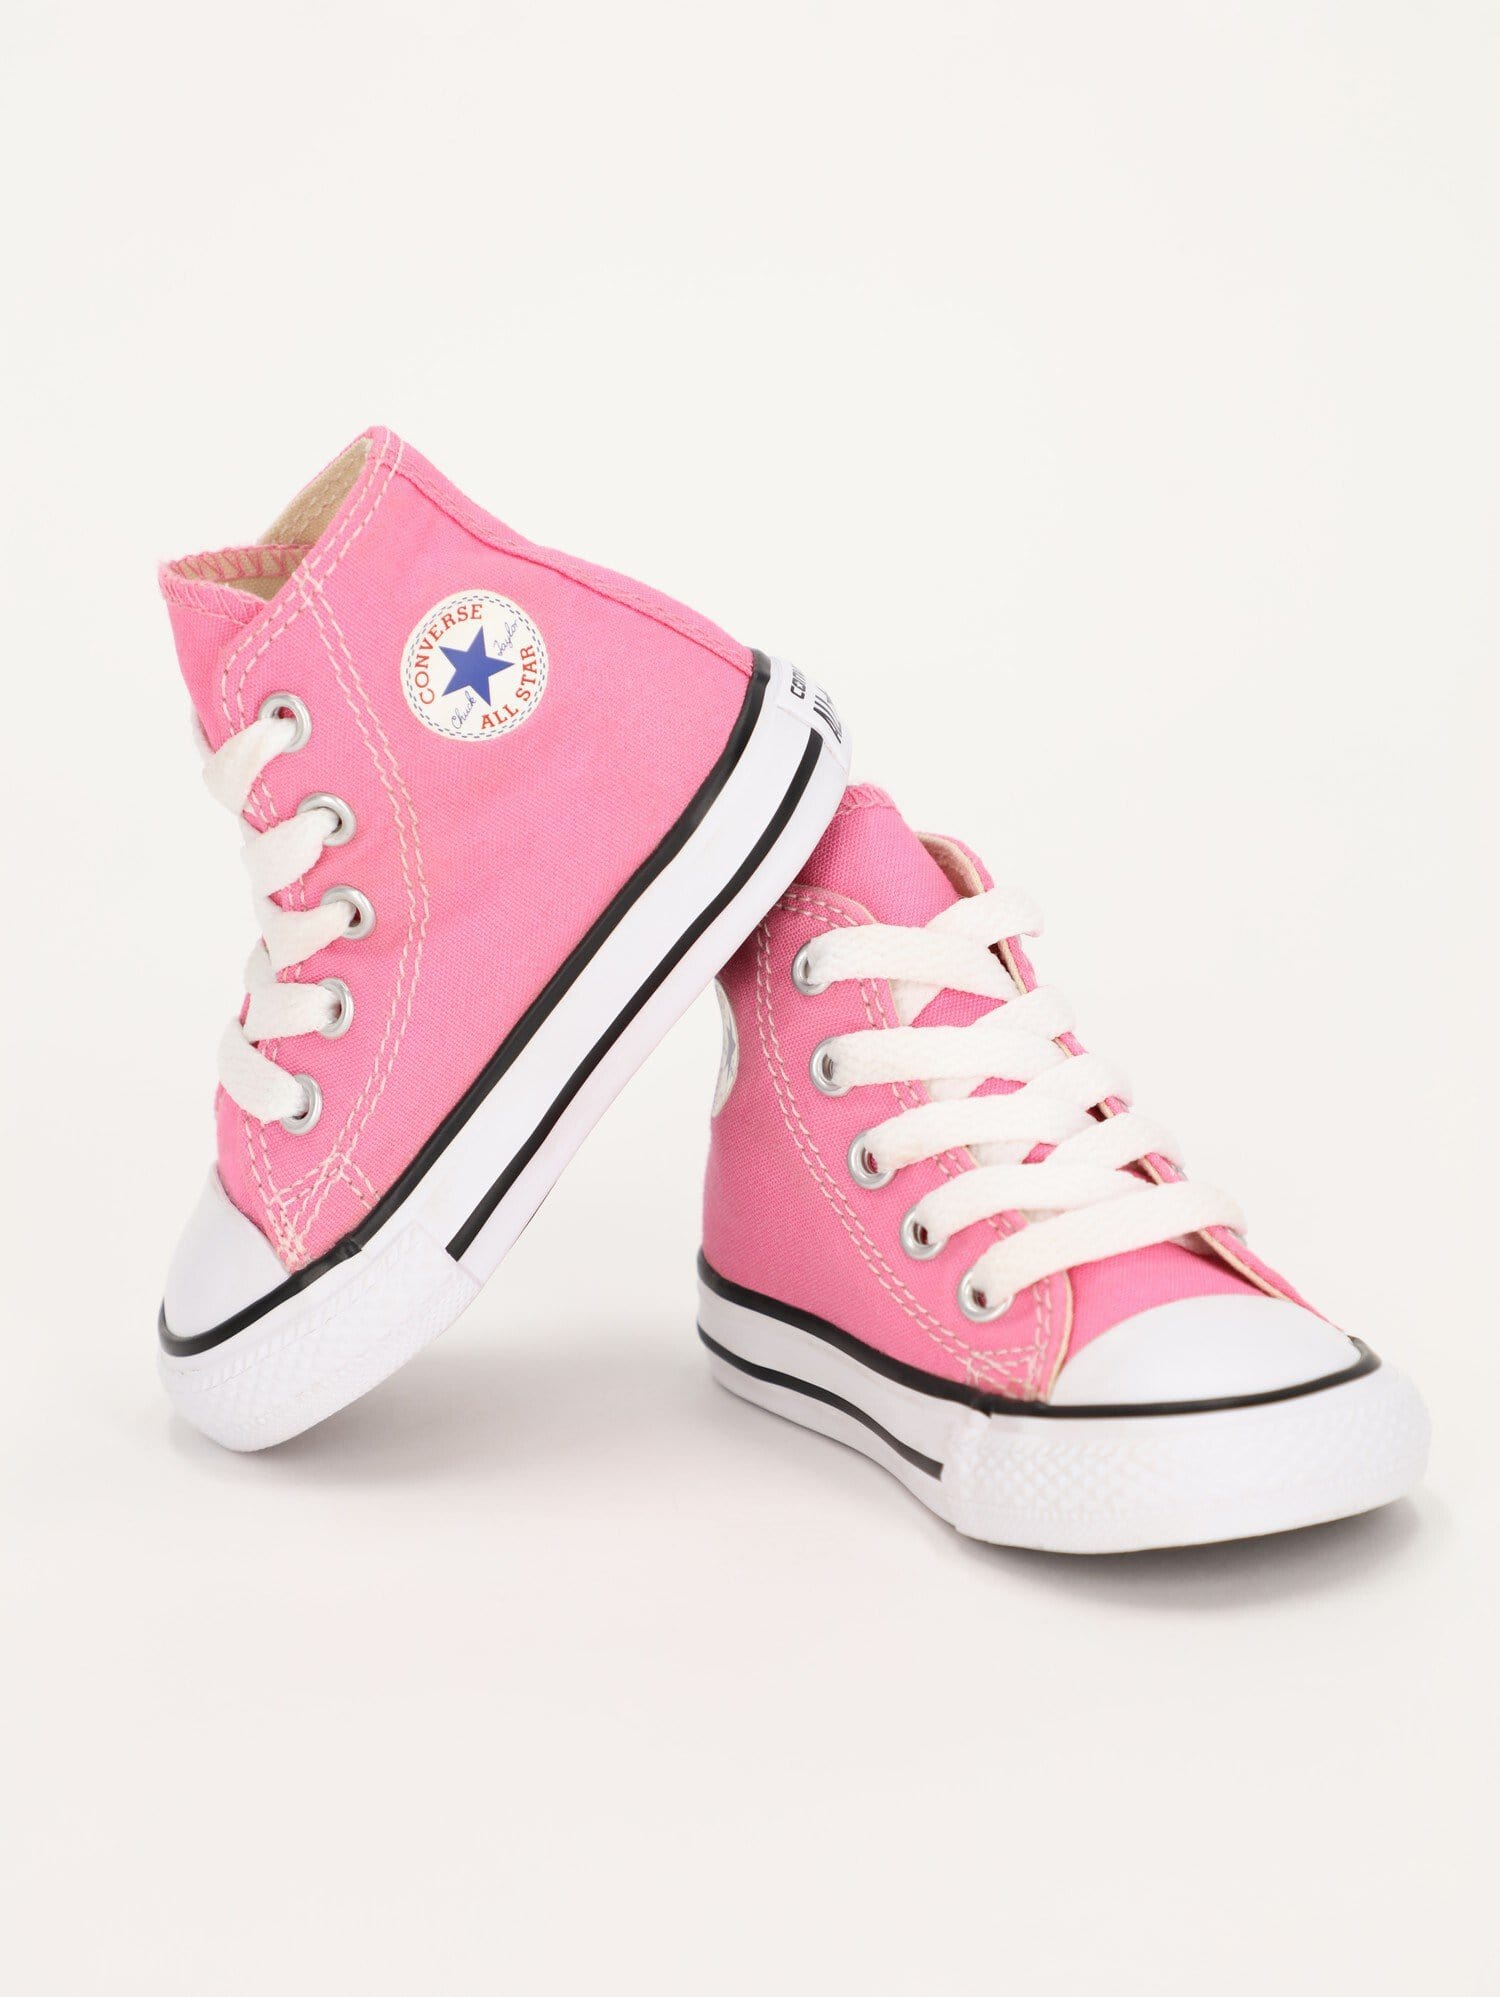 Converse Footwear Pink / 26 Kids Chuck Taylor All Star High Top - 7j234